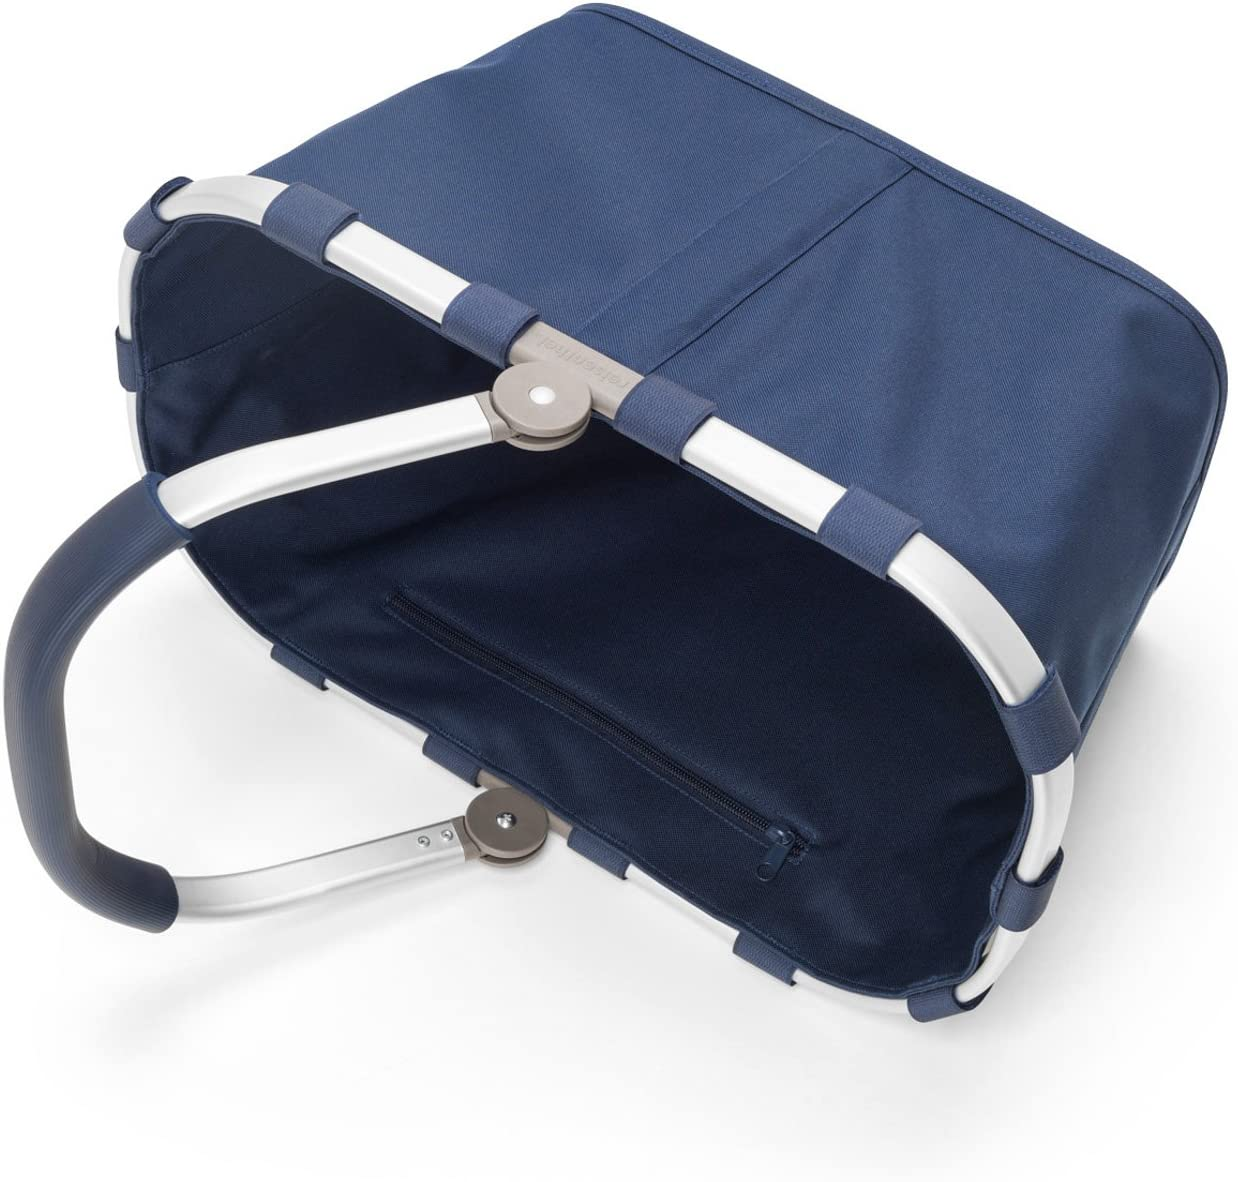 reisenthel Carrybag Fabric Picnic Tote Dark Blue Sturdy Lightweight Basket for Shopping and Storage